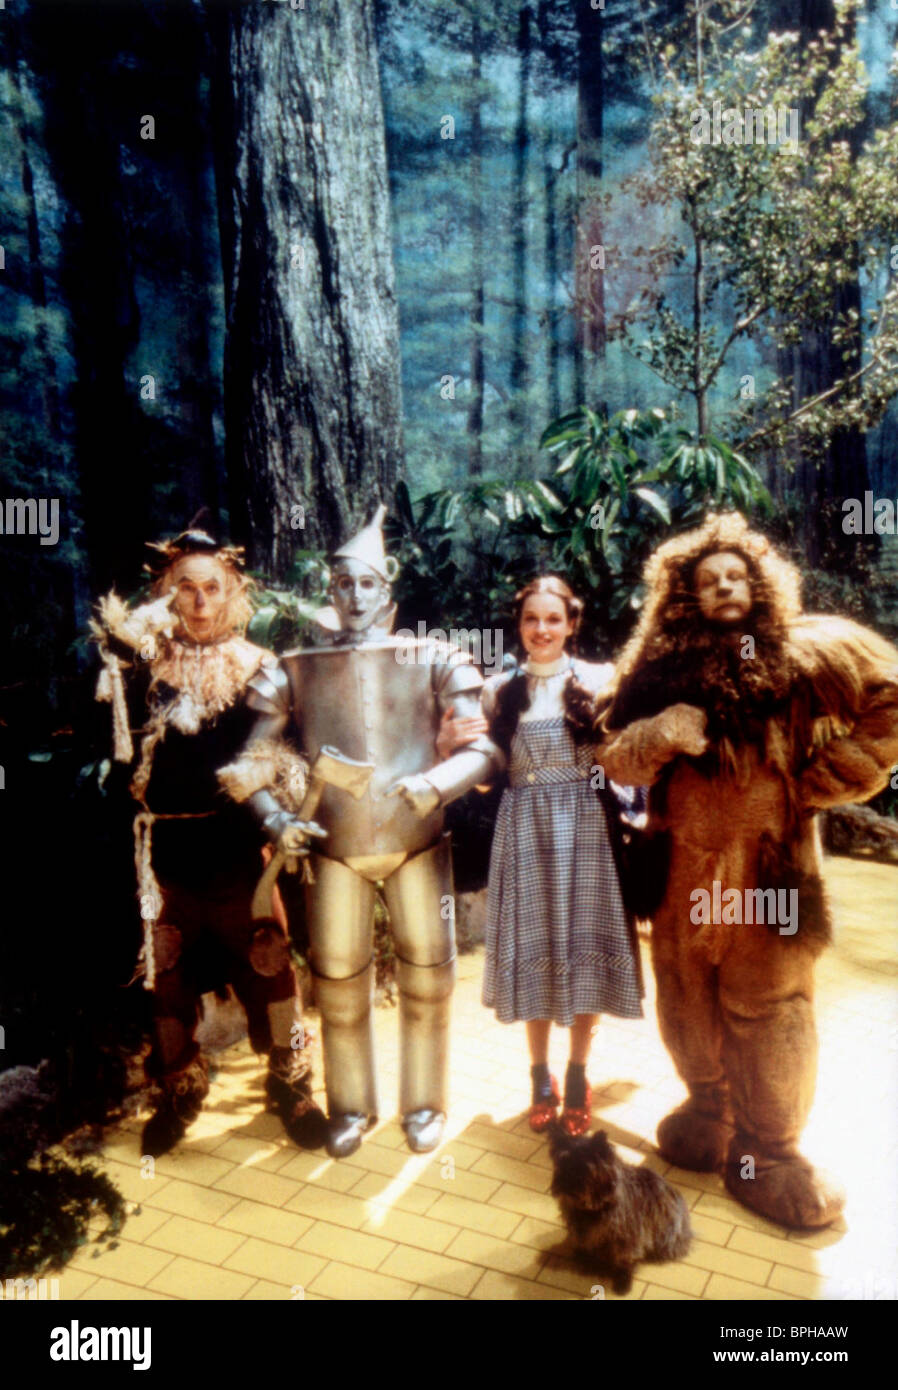 Judy Garland Life With Judy Garland Me And My Shadows Wizard Of Oz Stock Photo Alamy